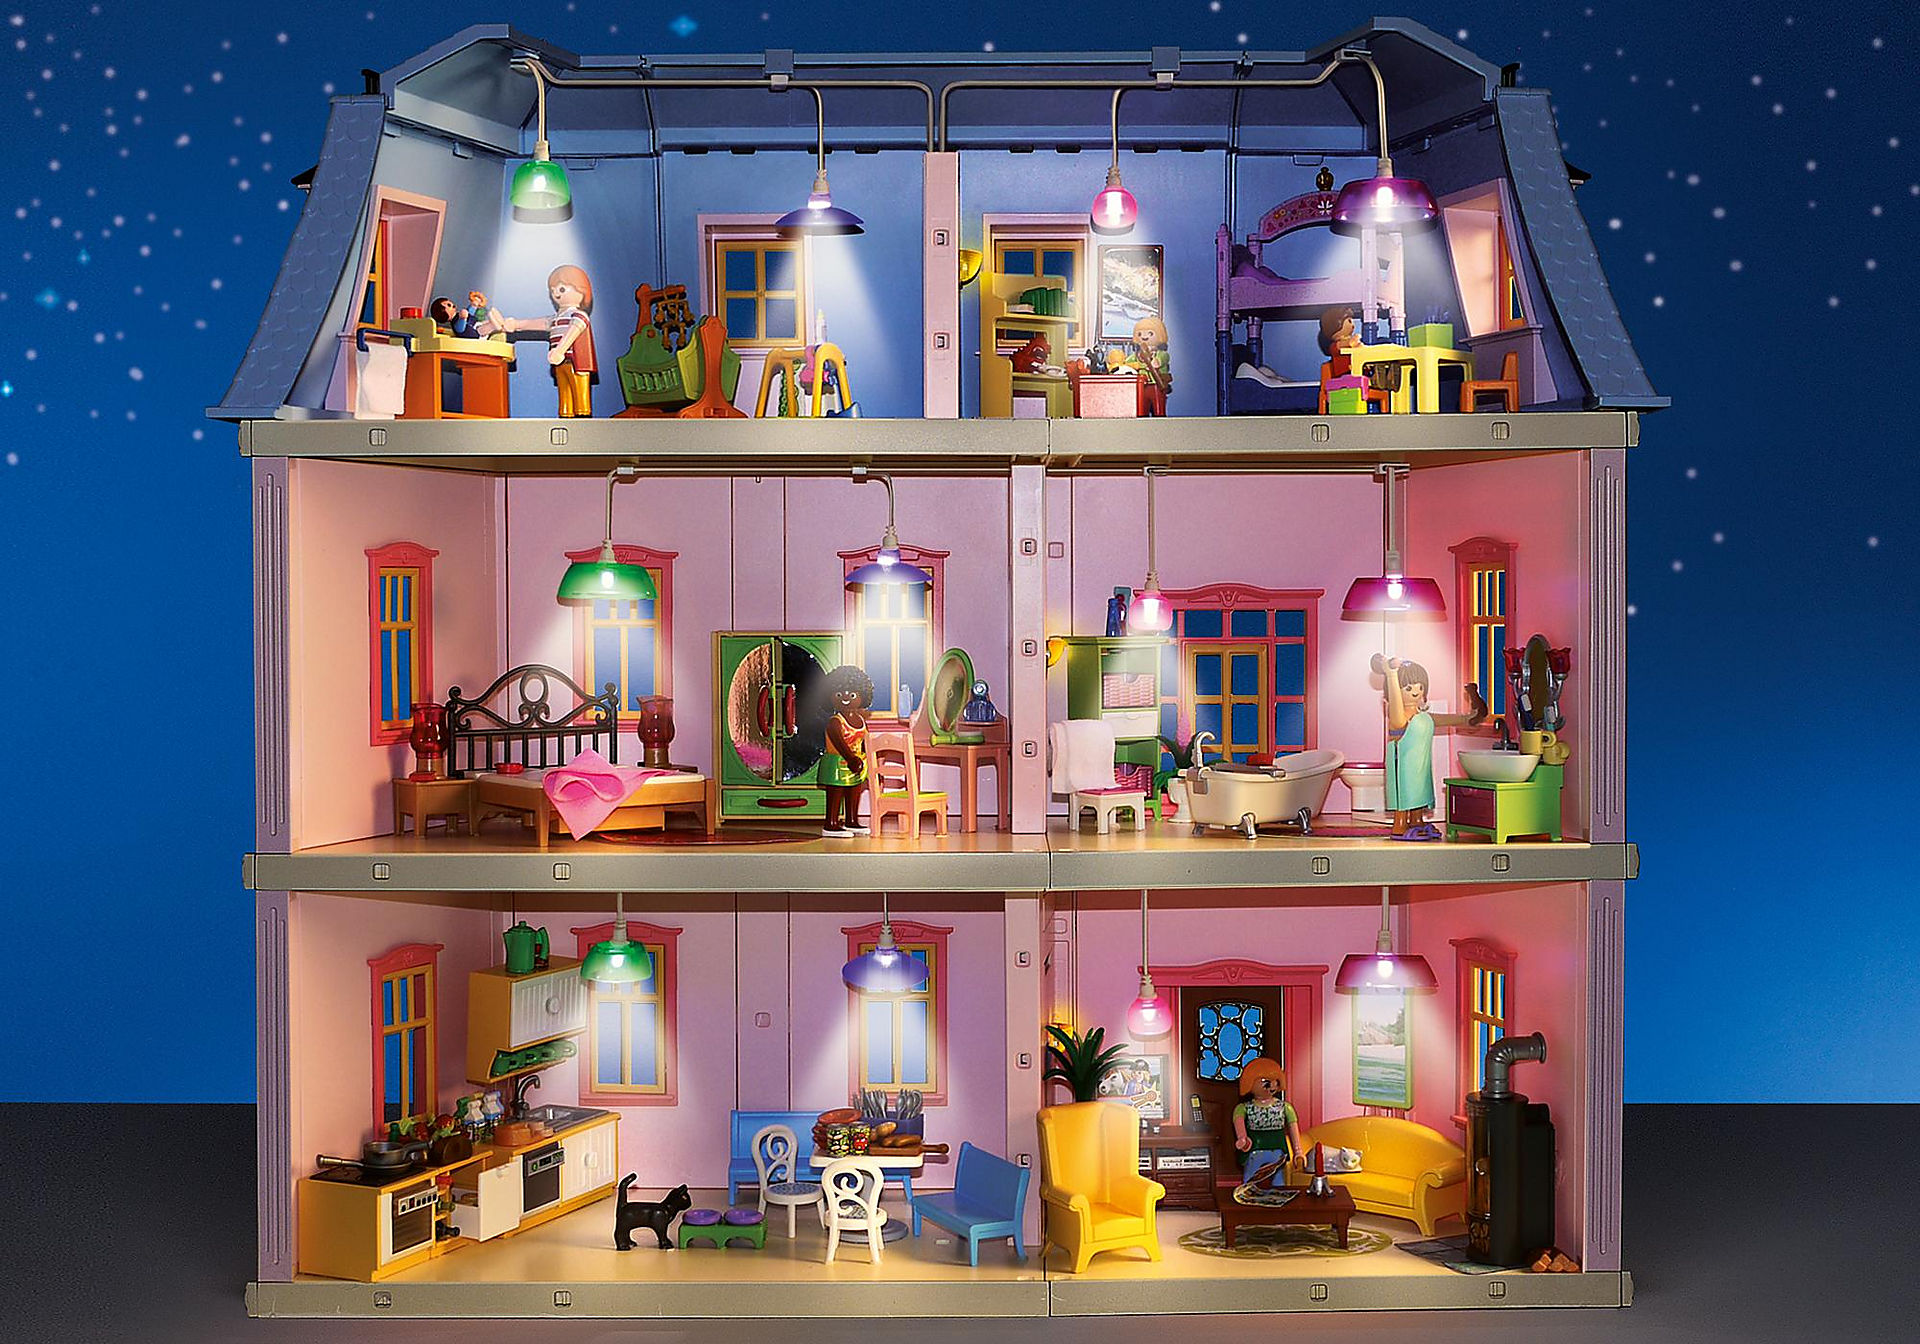 http://media.playmobil.com/i/playmobil/6456_product_extra1/Light Set for Deluxe Dollhouse (5303)